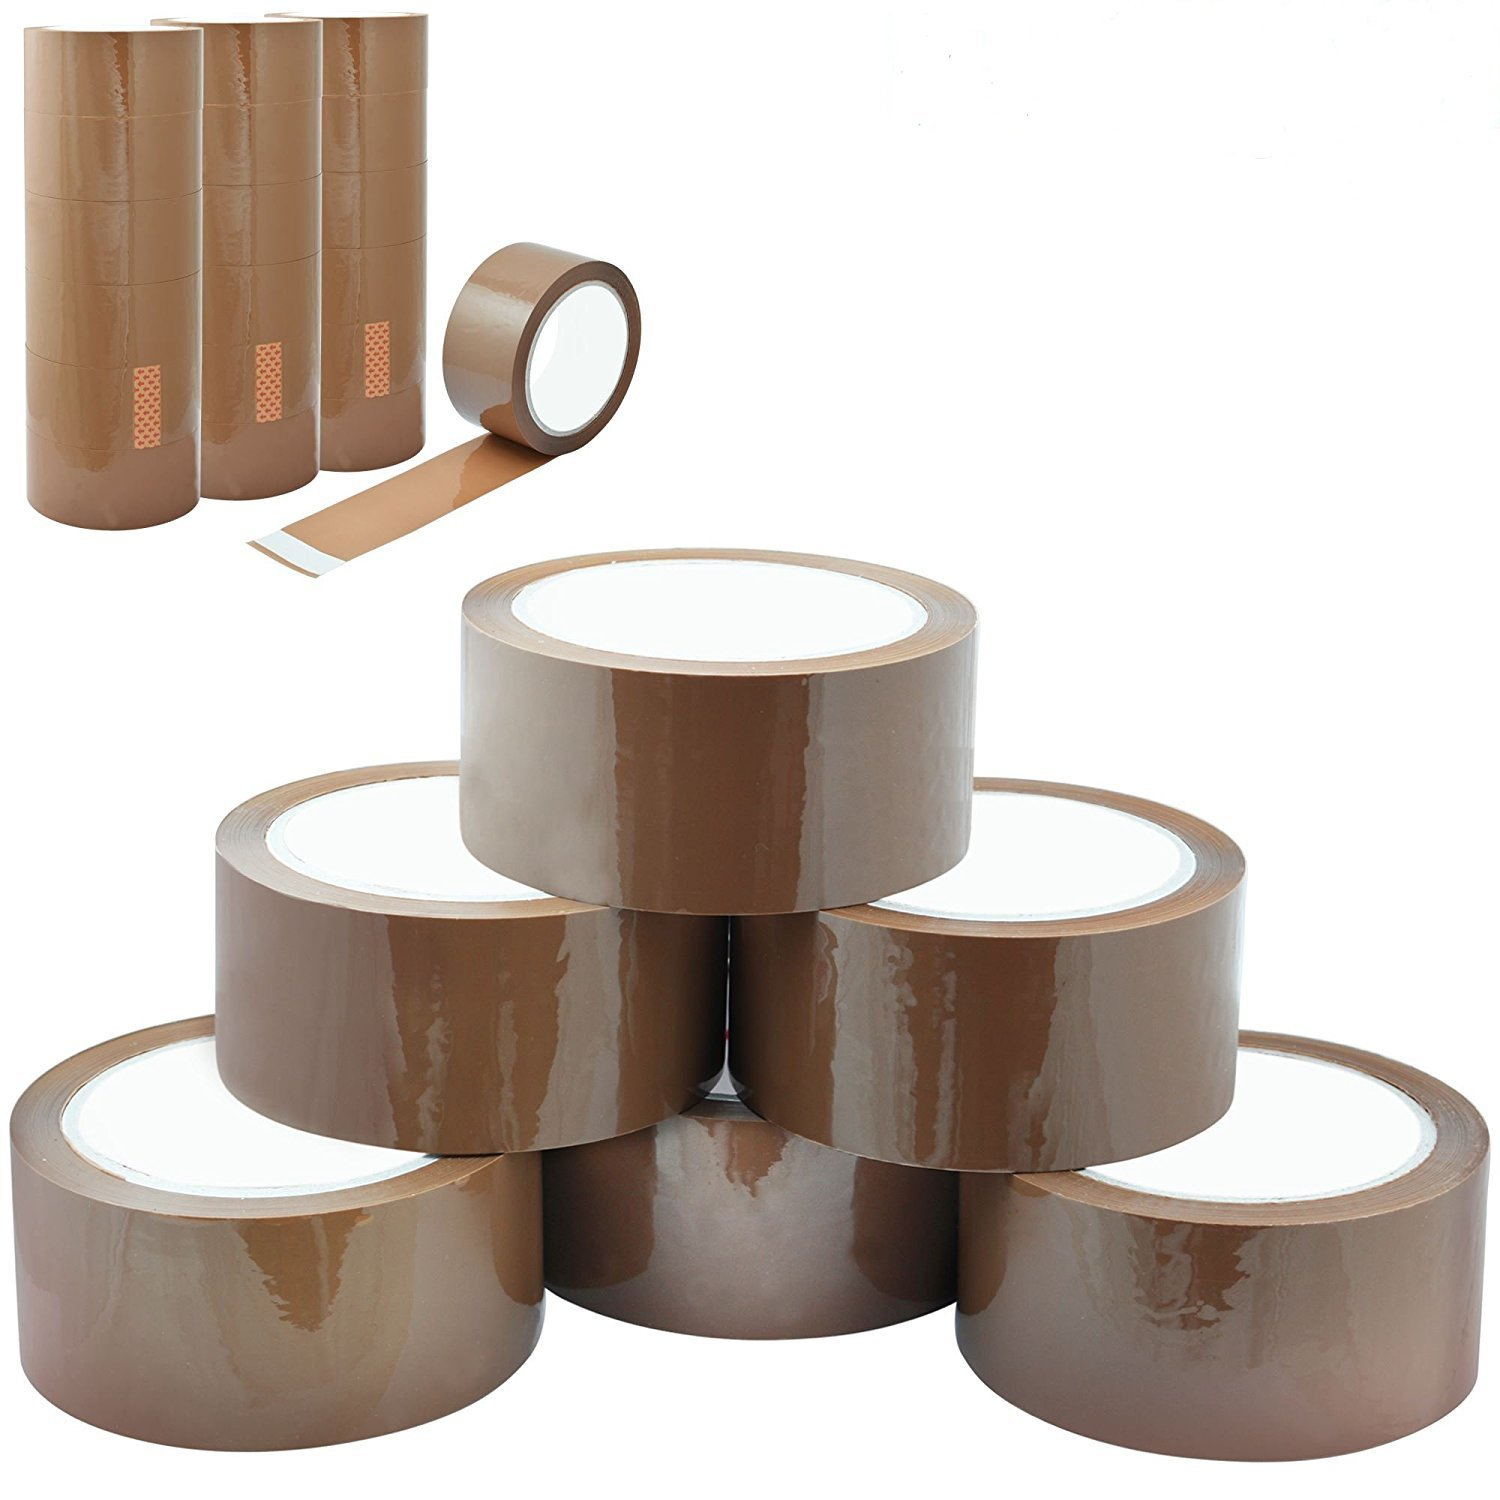 12 x Brown Packaging Tape Parcels Boxes Pack Of 12 Heavy Duty Strong Secure and Sticky Seal – 12 Rolls 48mm x 66M Packaging Now